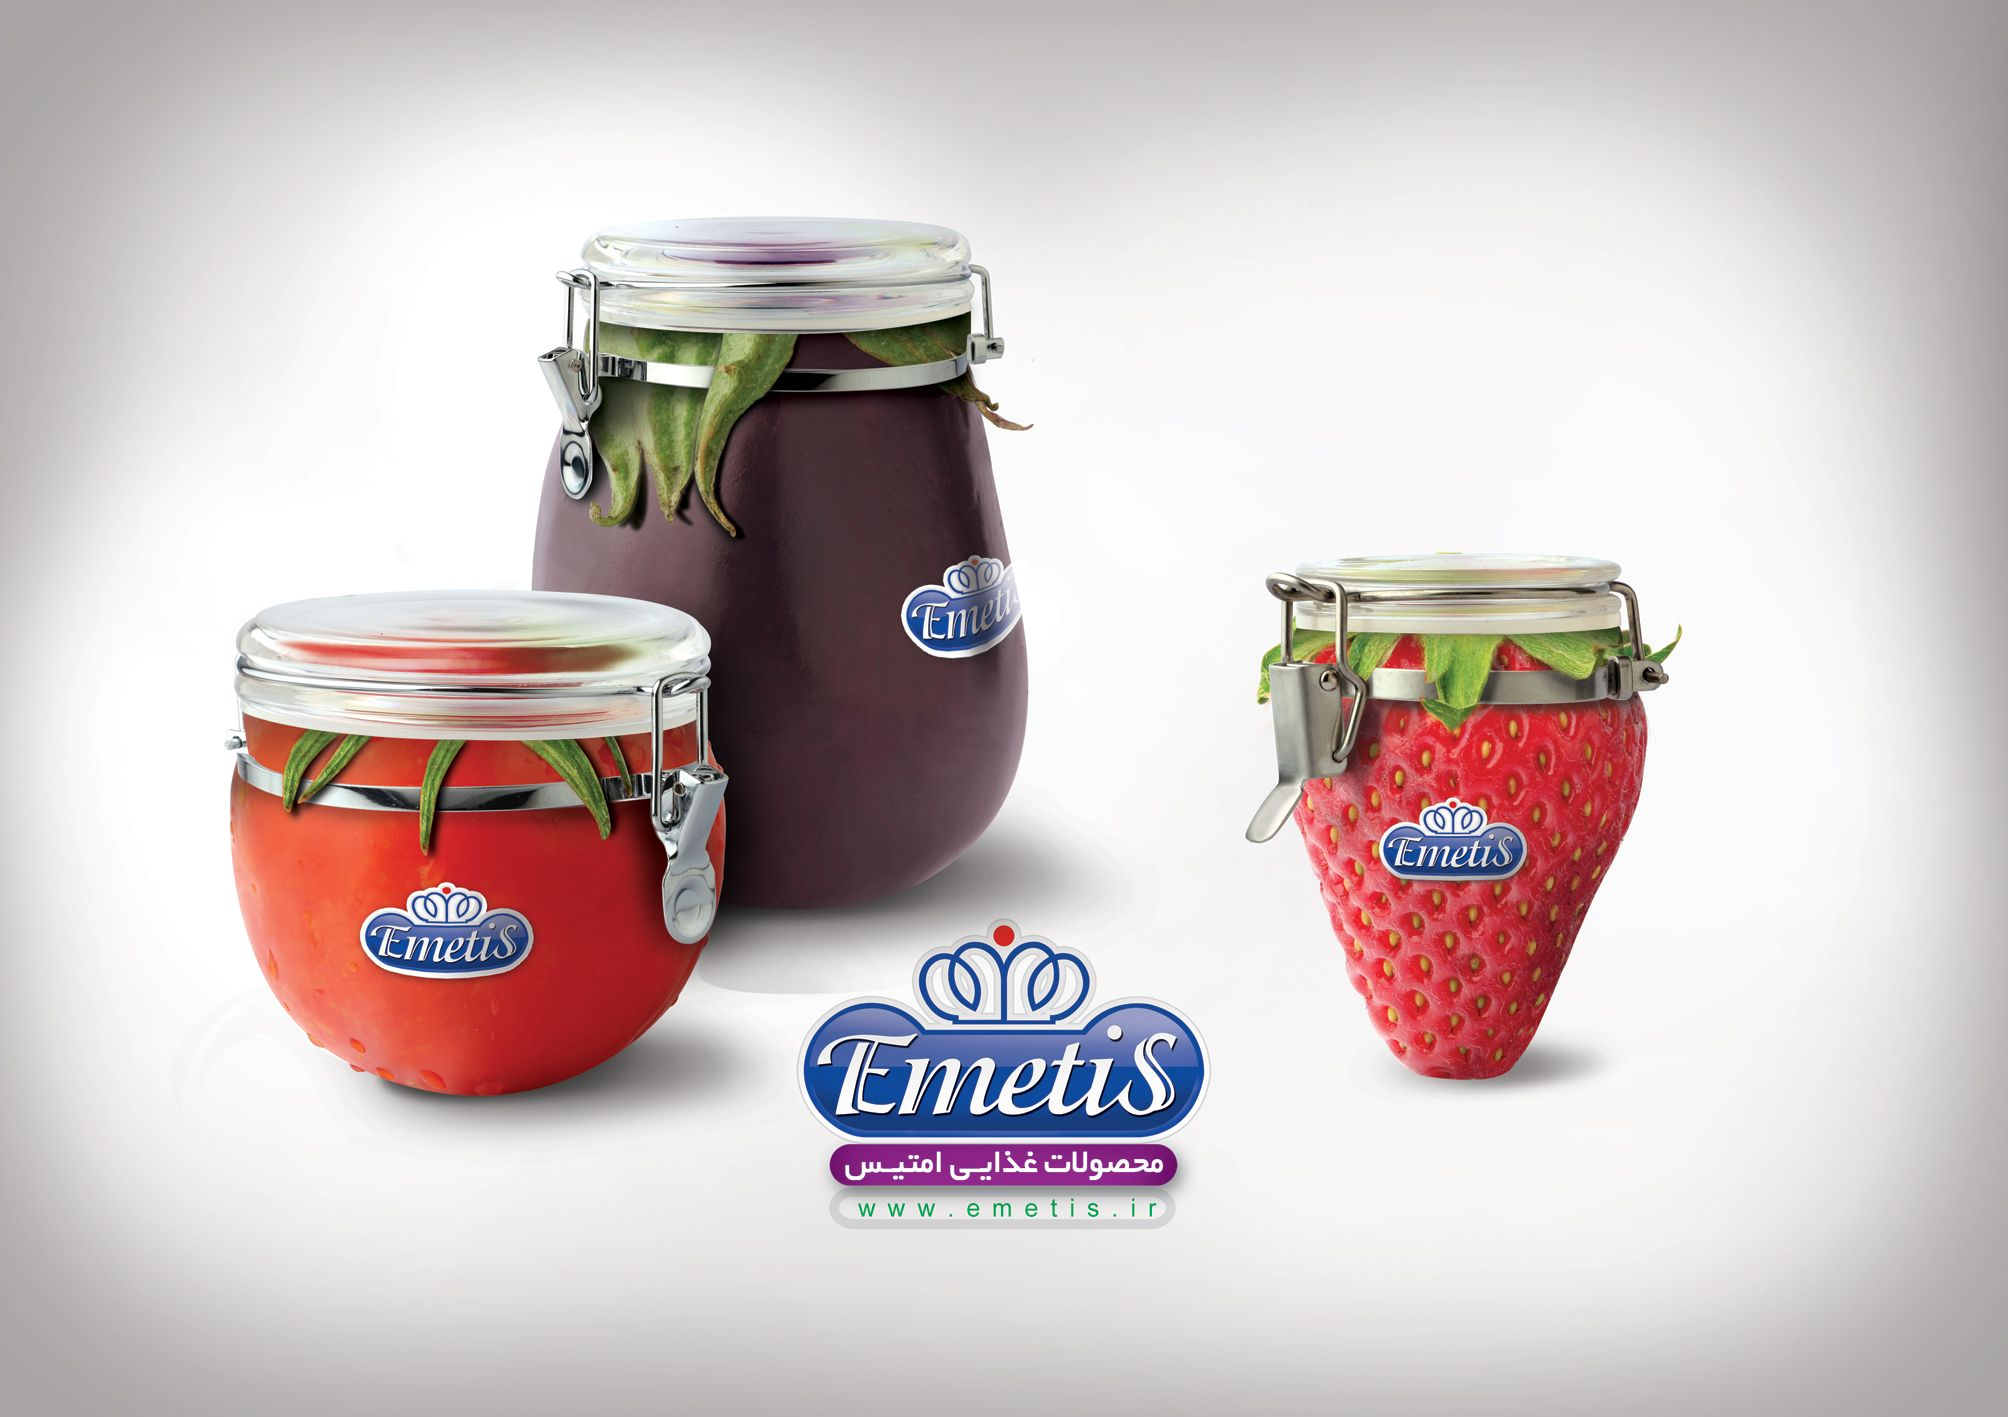 Emetis #foodproducts #food #products #advertismentdesign ...